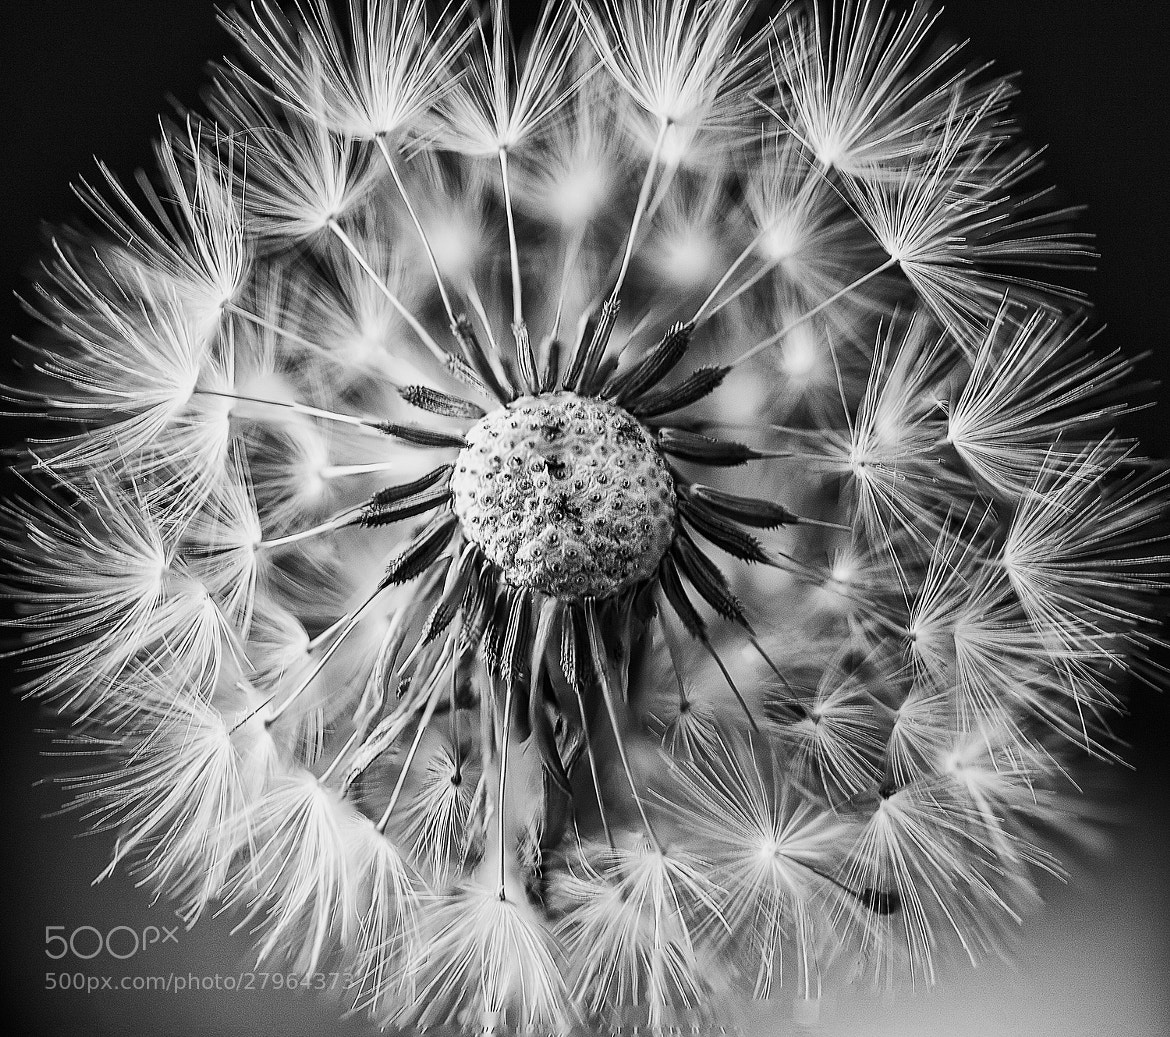 Photograph Dandelion 2 by Margaret Morgan on 500px